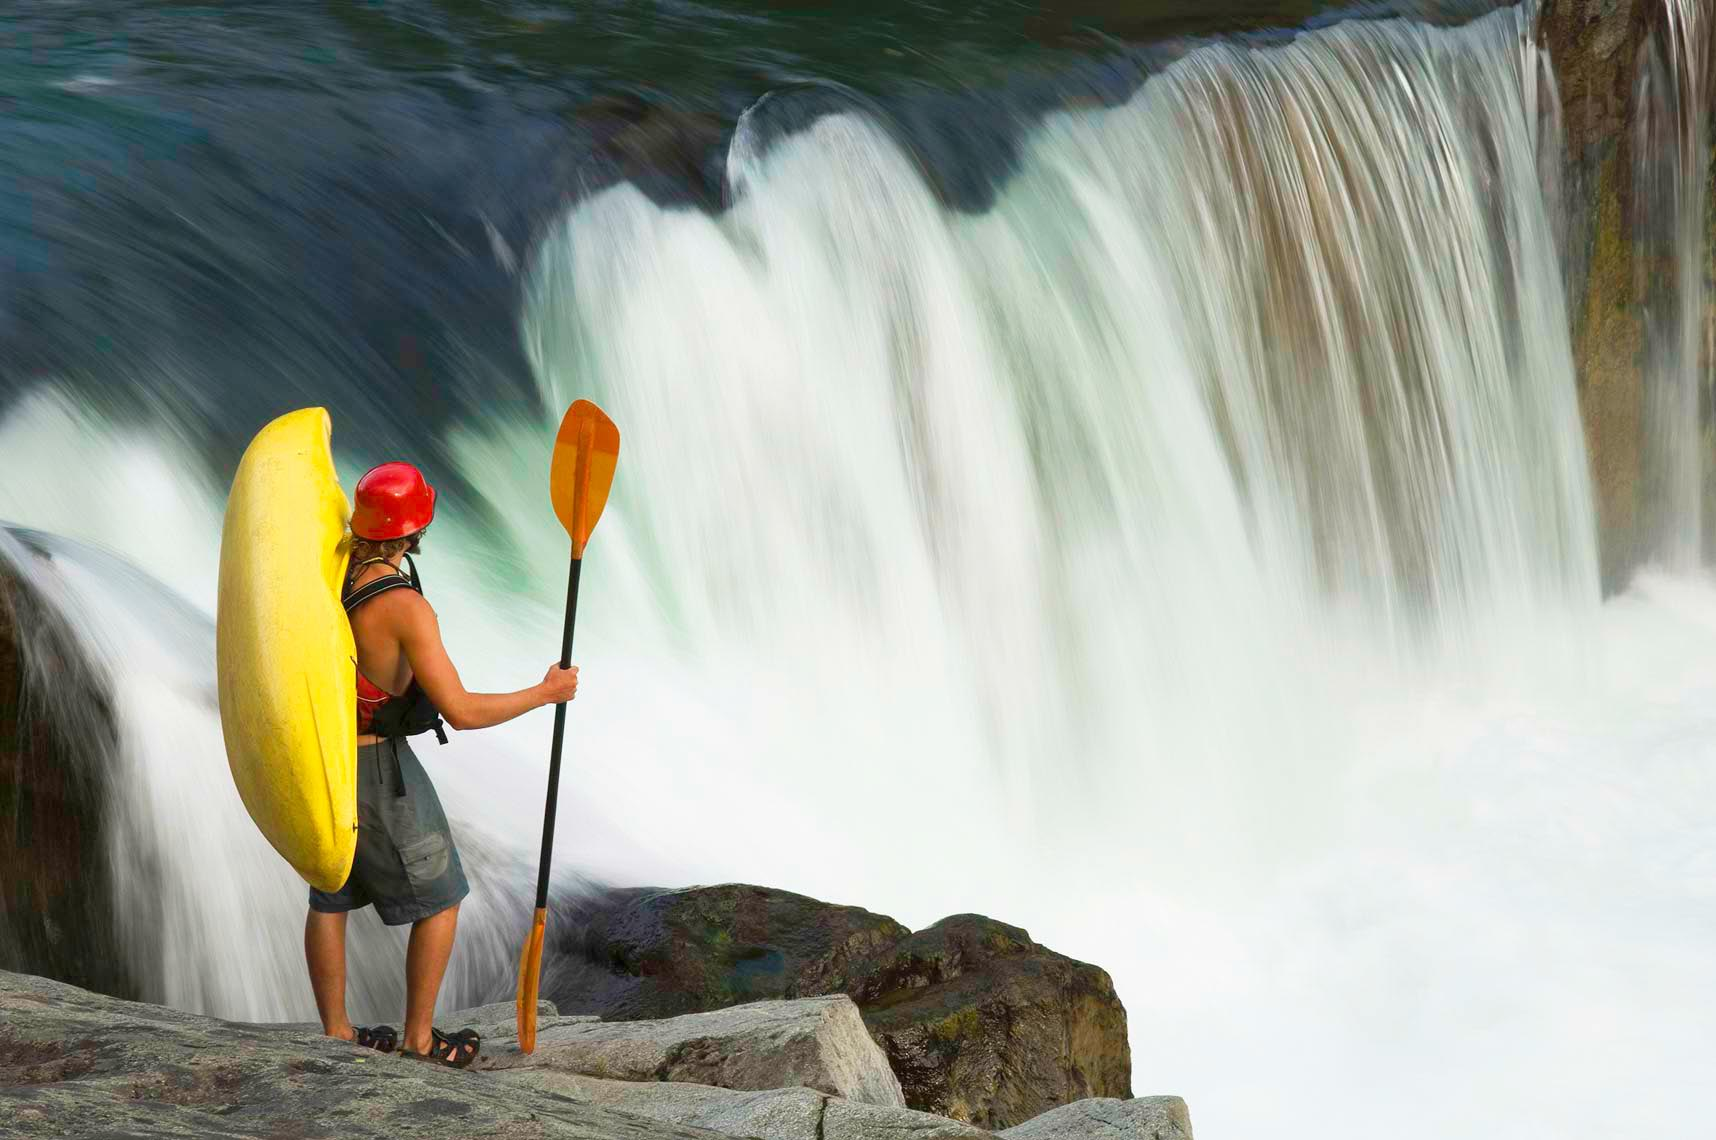 Whistler kayaker by waterfalls